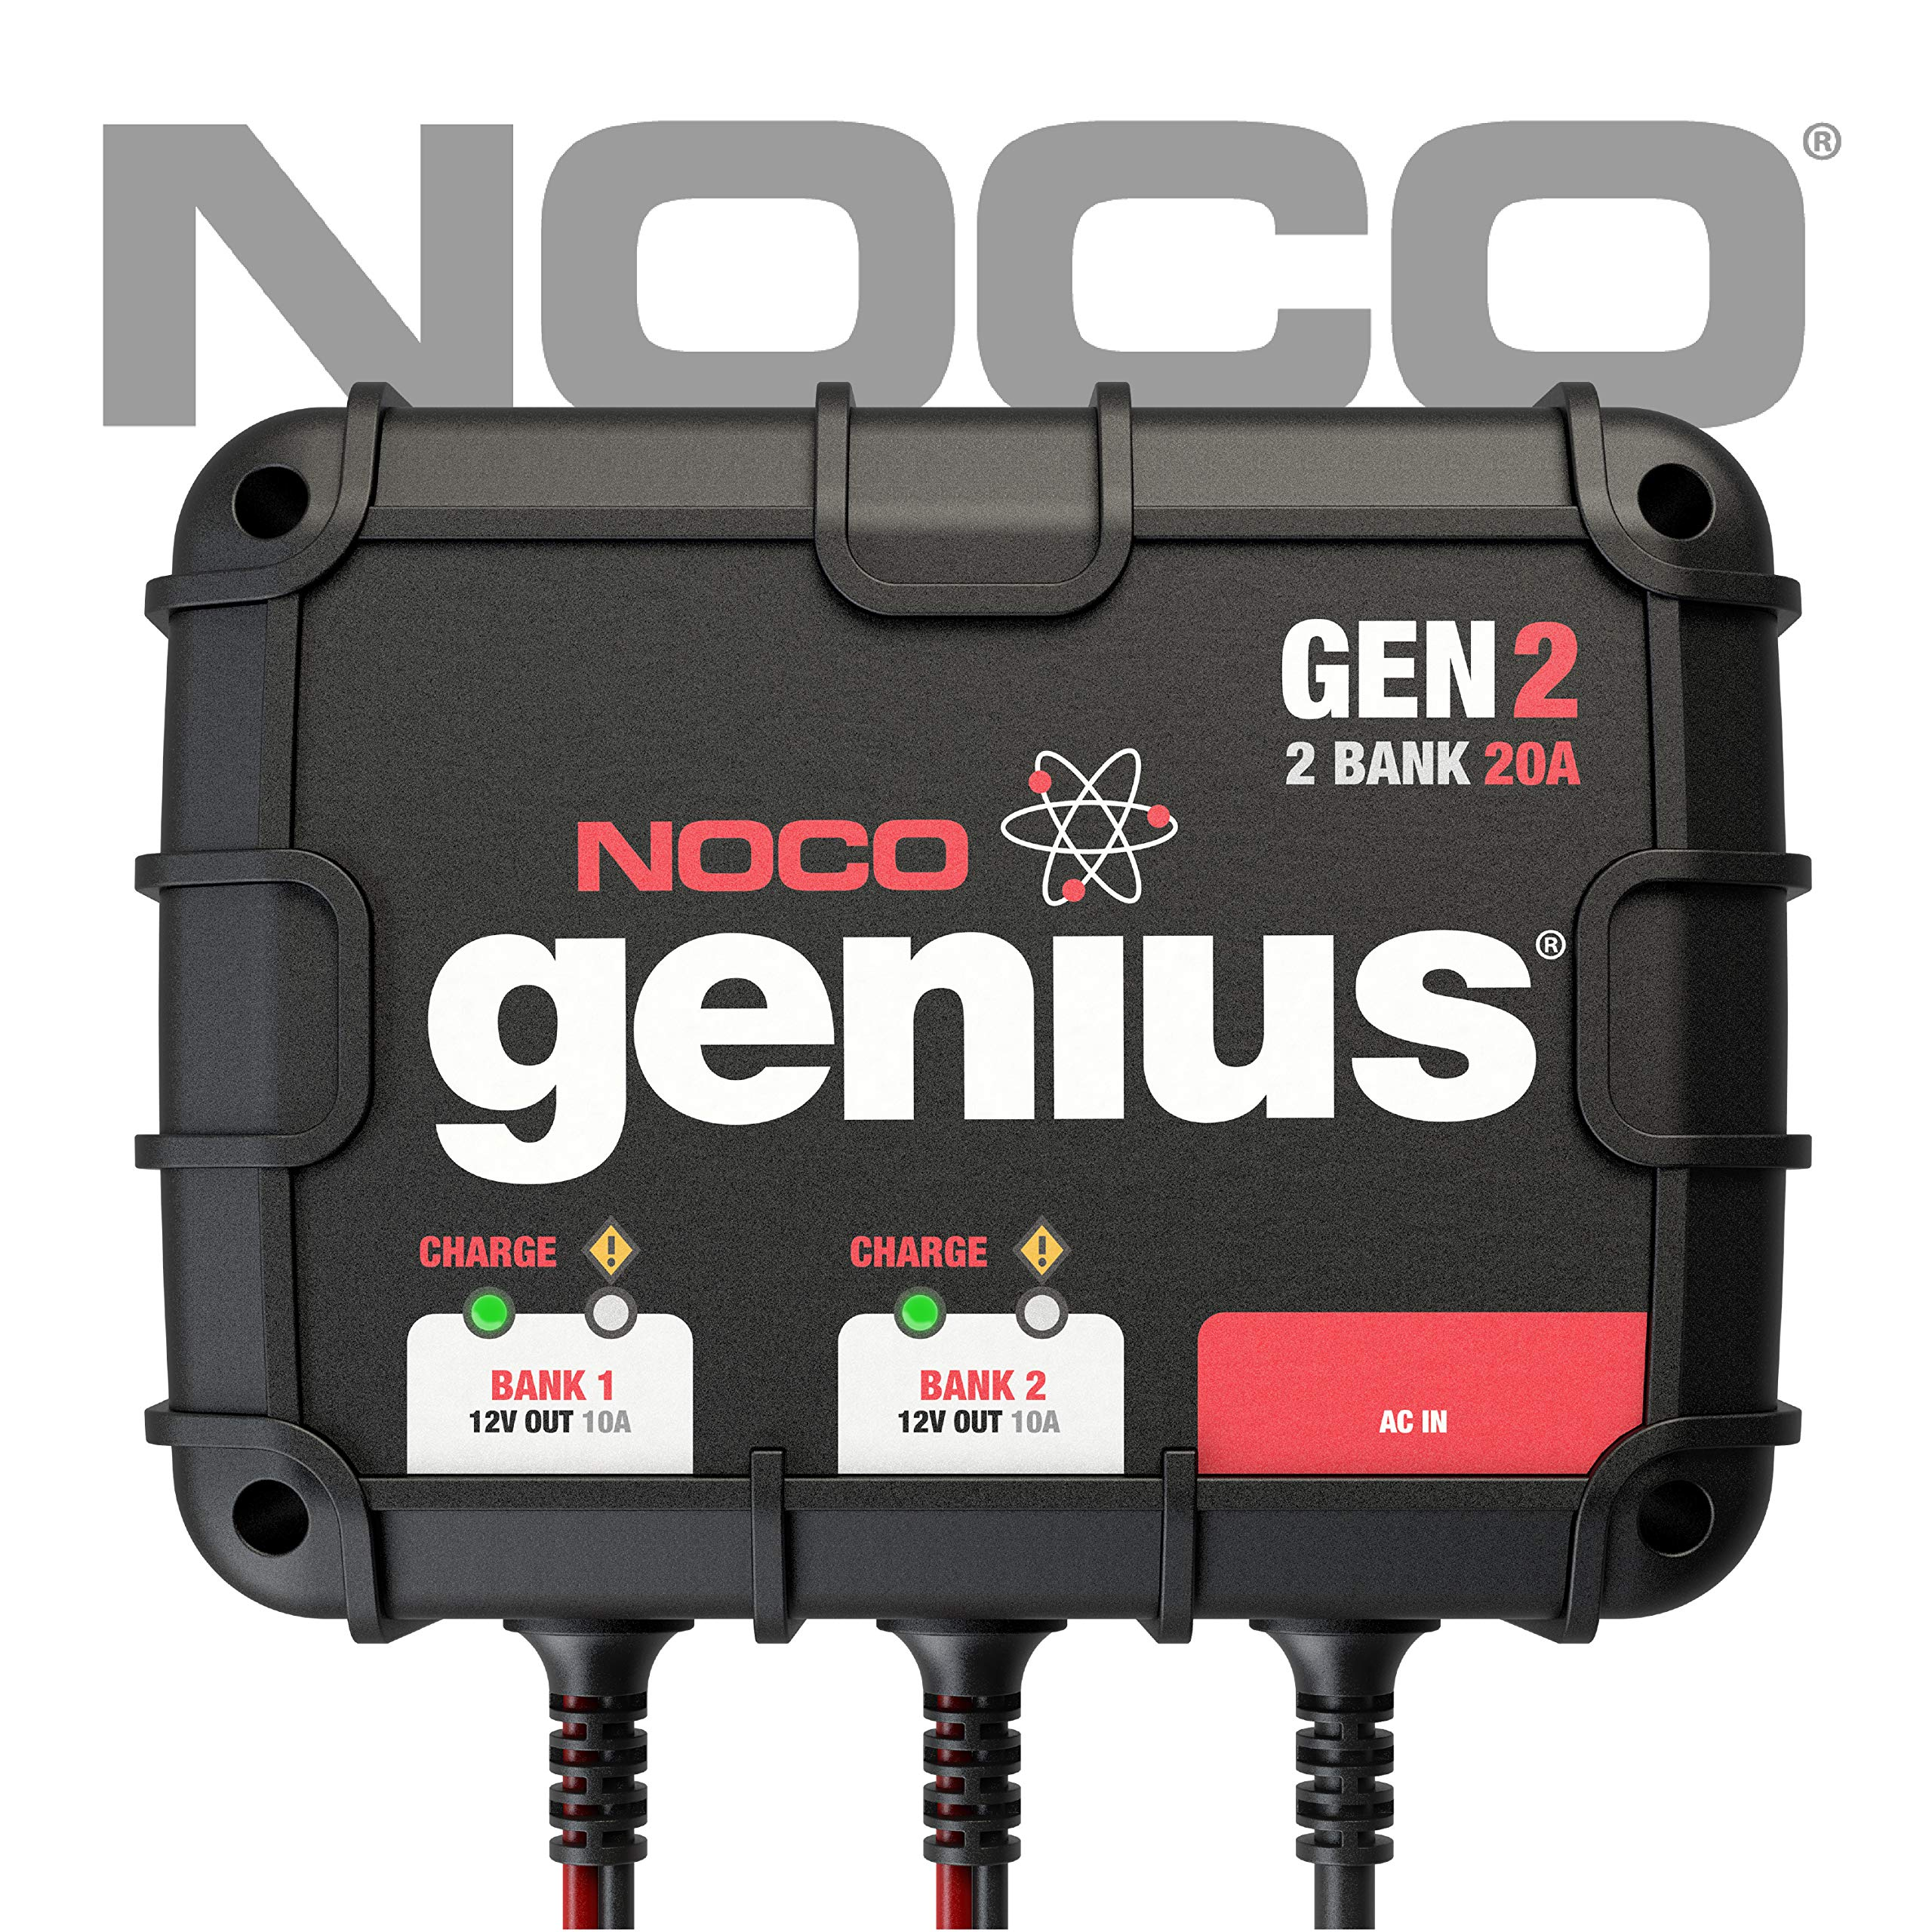 NOCO Genius GEN2 20 Amp 2-Bank On-Board Battery Charger by NOCO